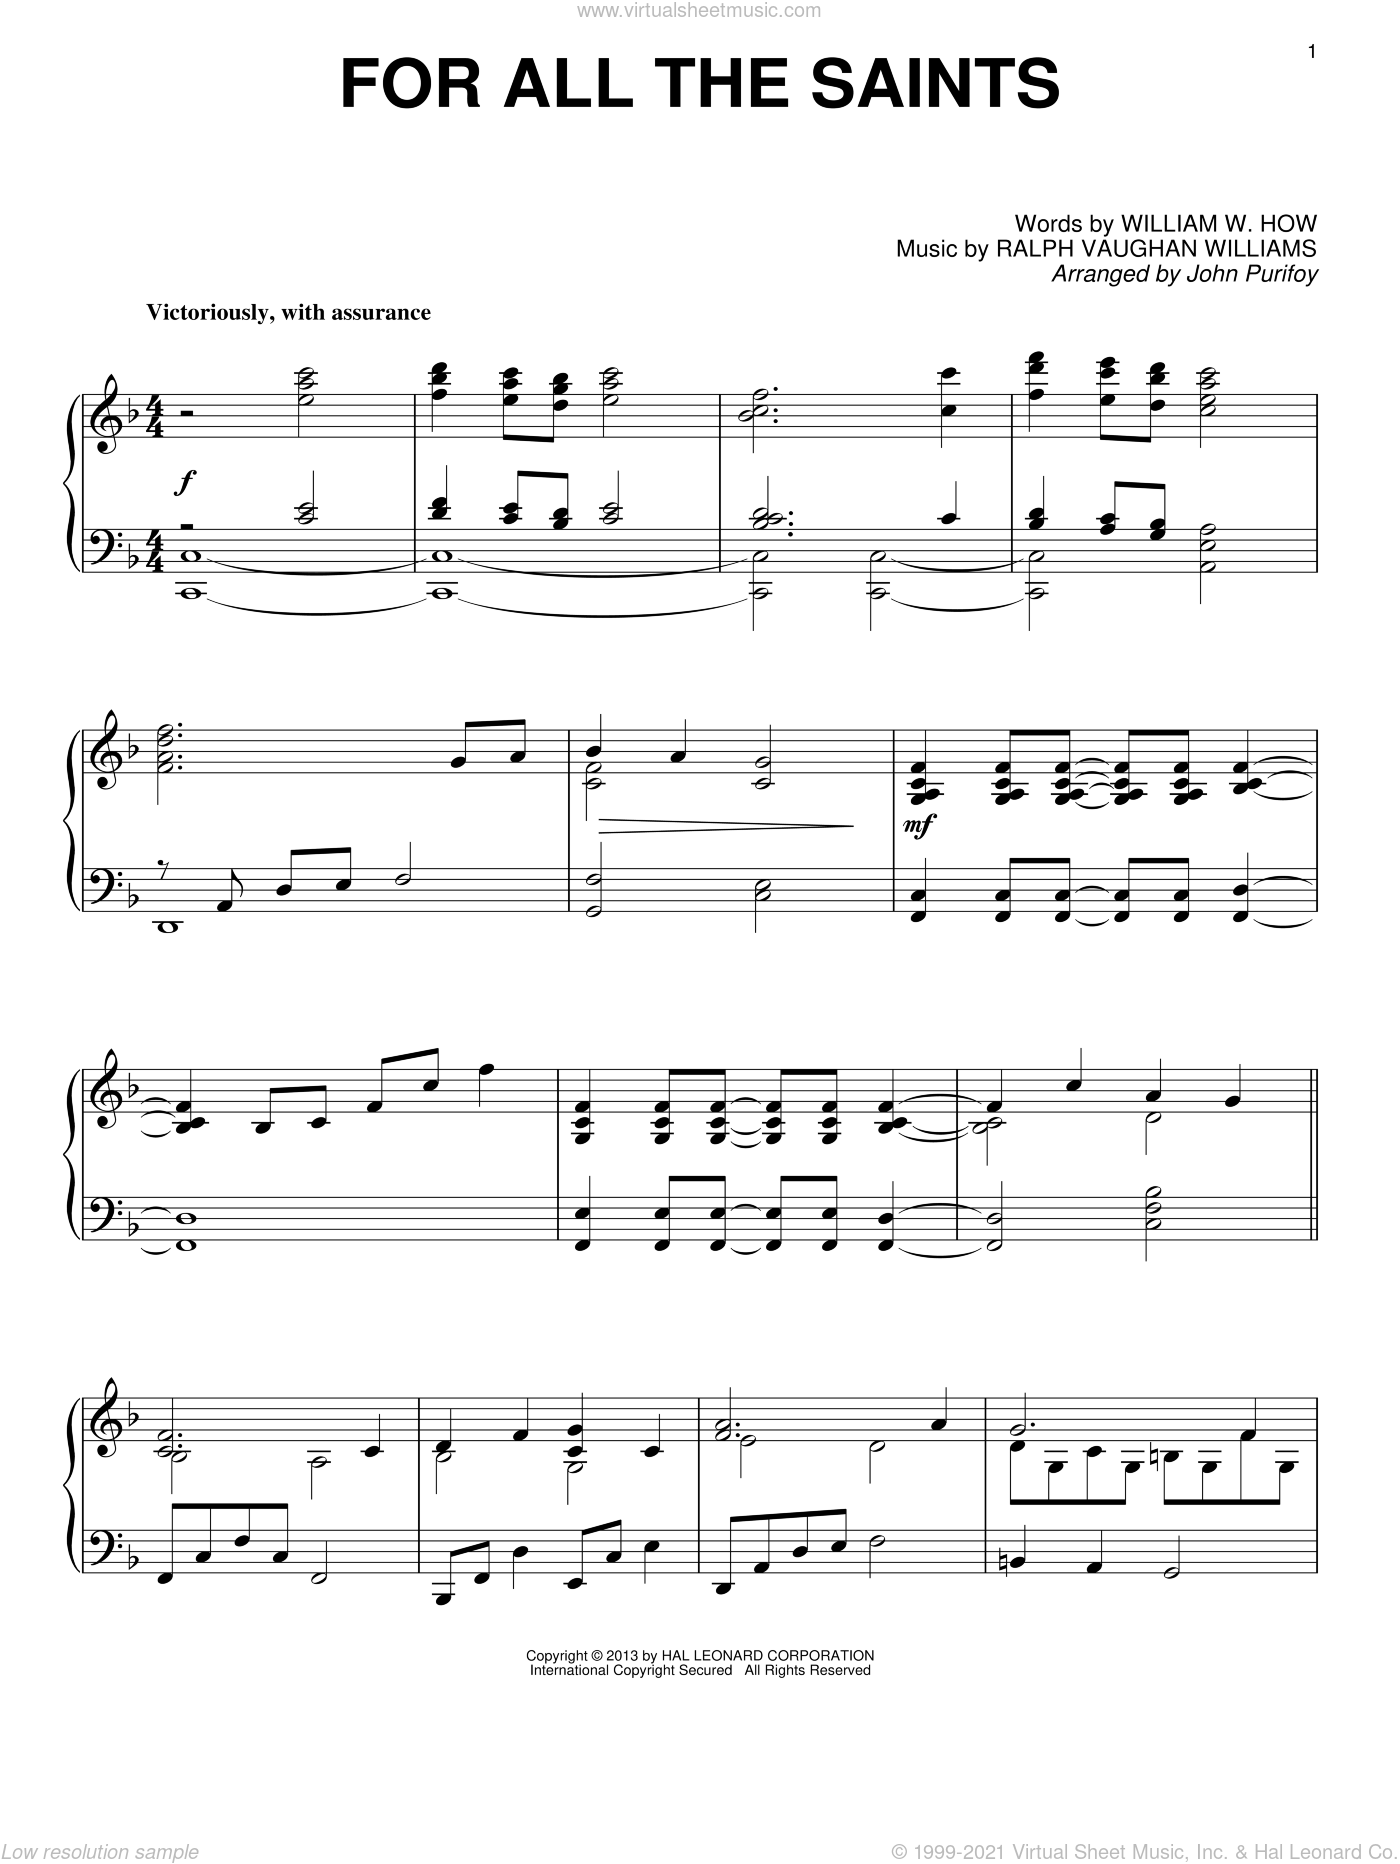 For All The Saints sheet music for piano solo by John Purifoy and William W. How. Score Image Preview.